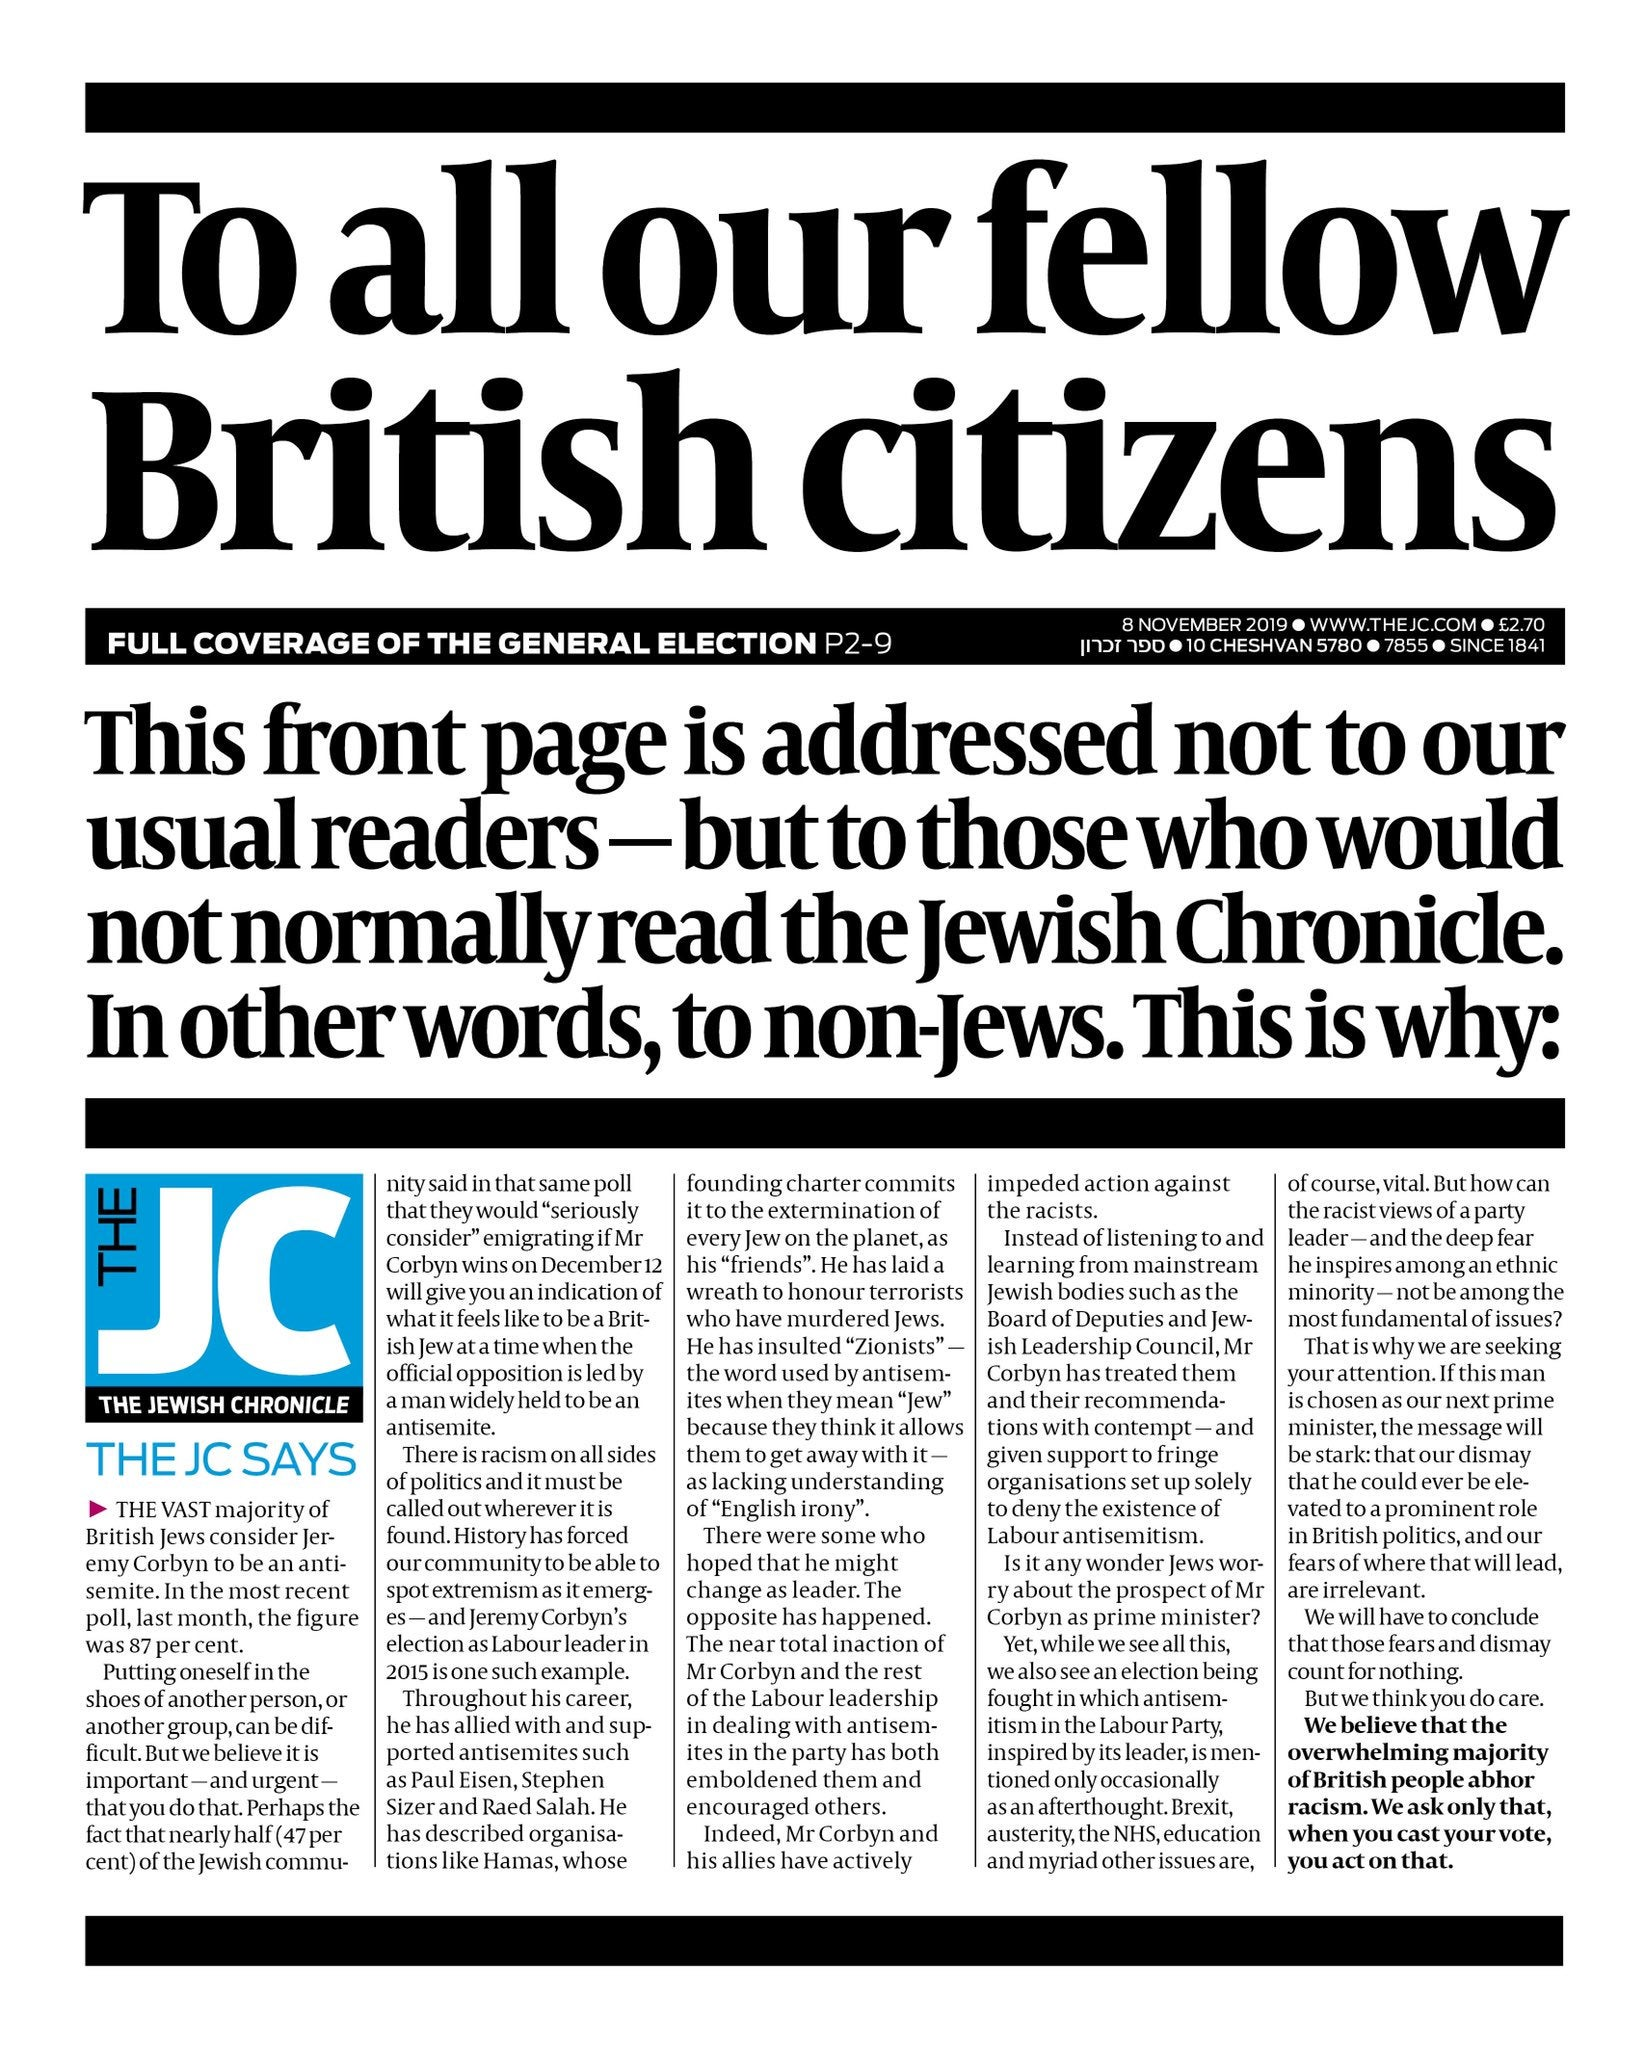 Why I warned non-Jews about Jeremy Corbyn on the front page of the Jewish Chronicle